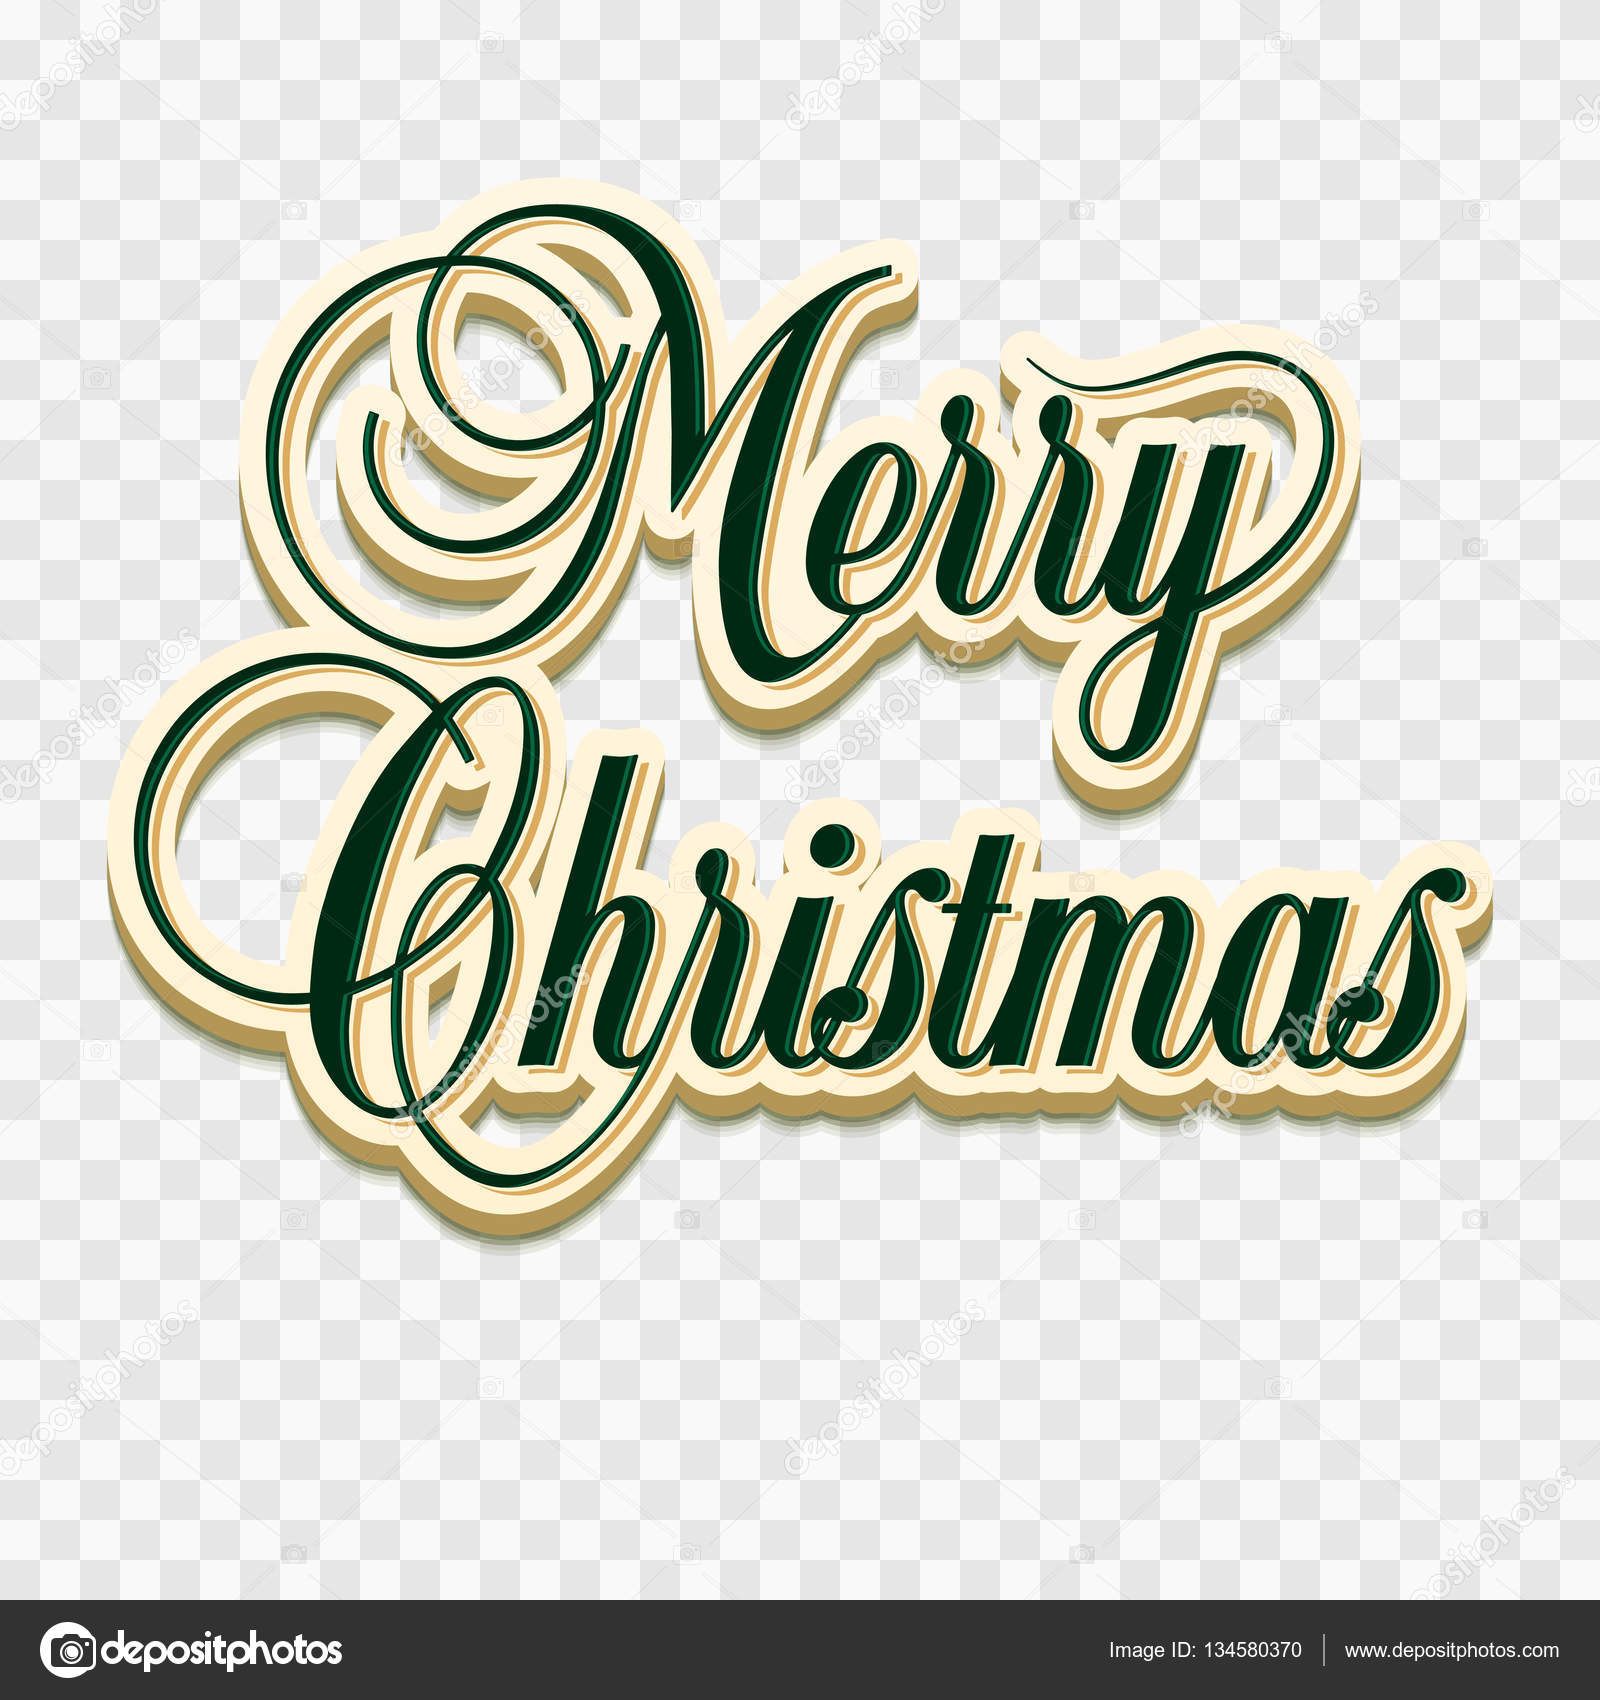 Merry Christmas Lettering.Merry Christmas Lettering Design Set Happy New Year And